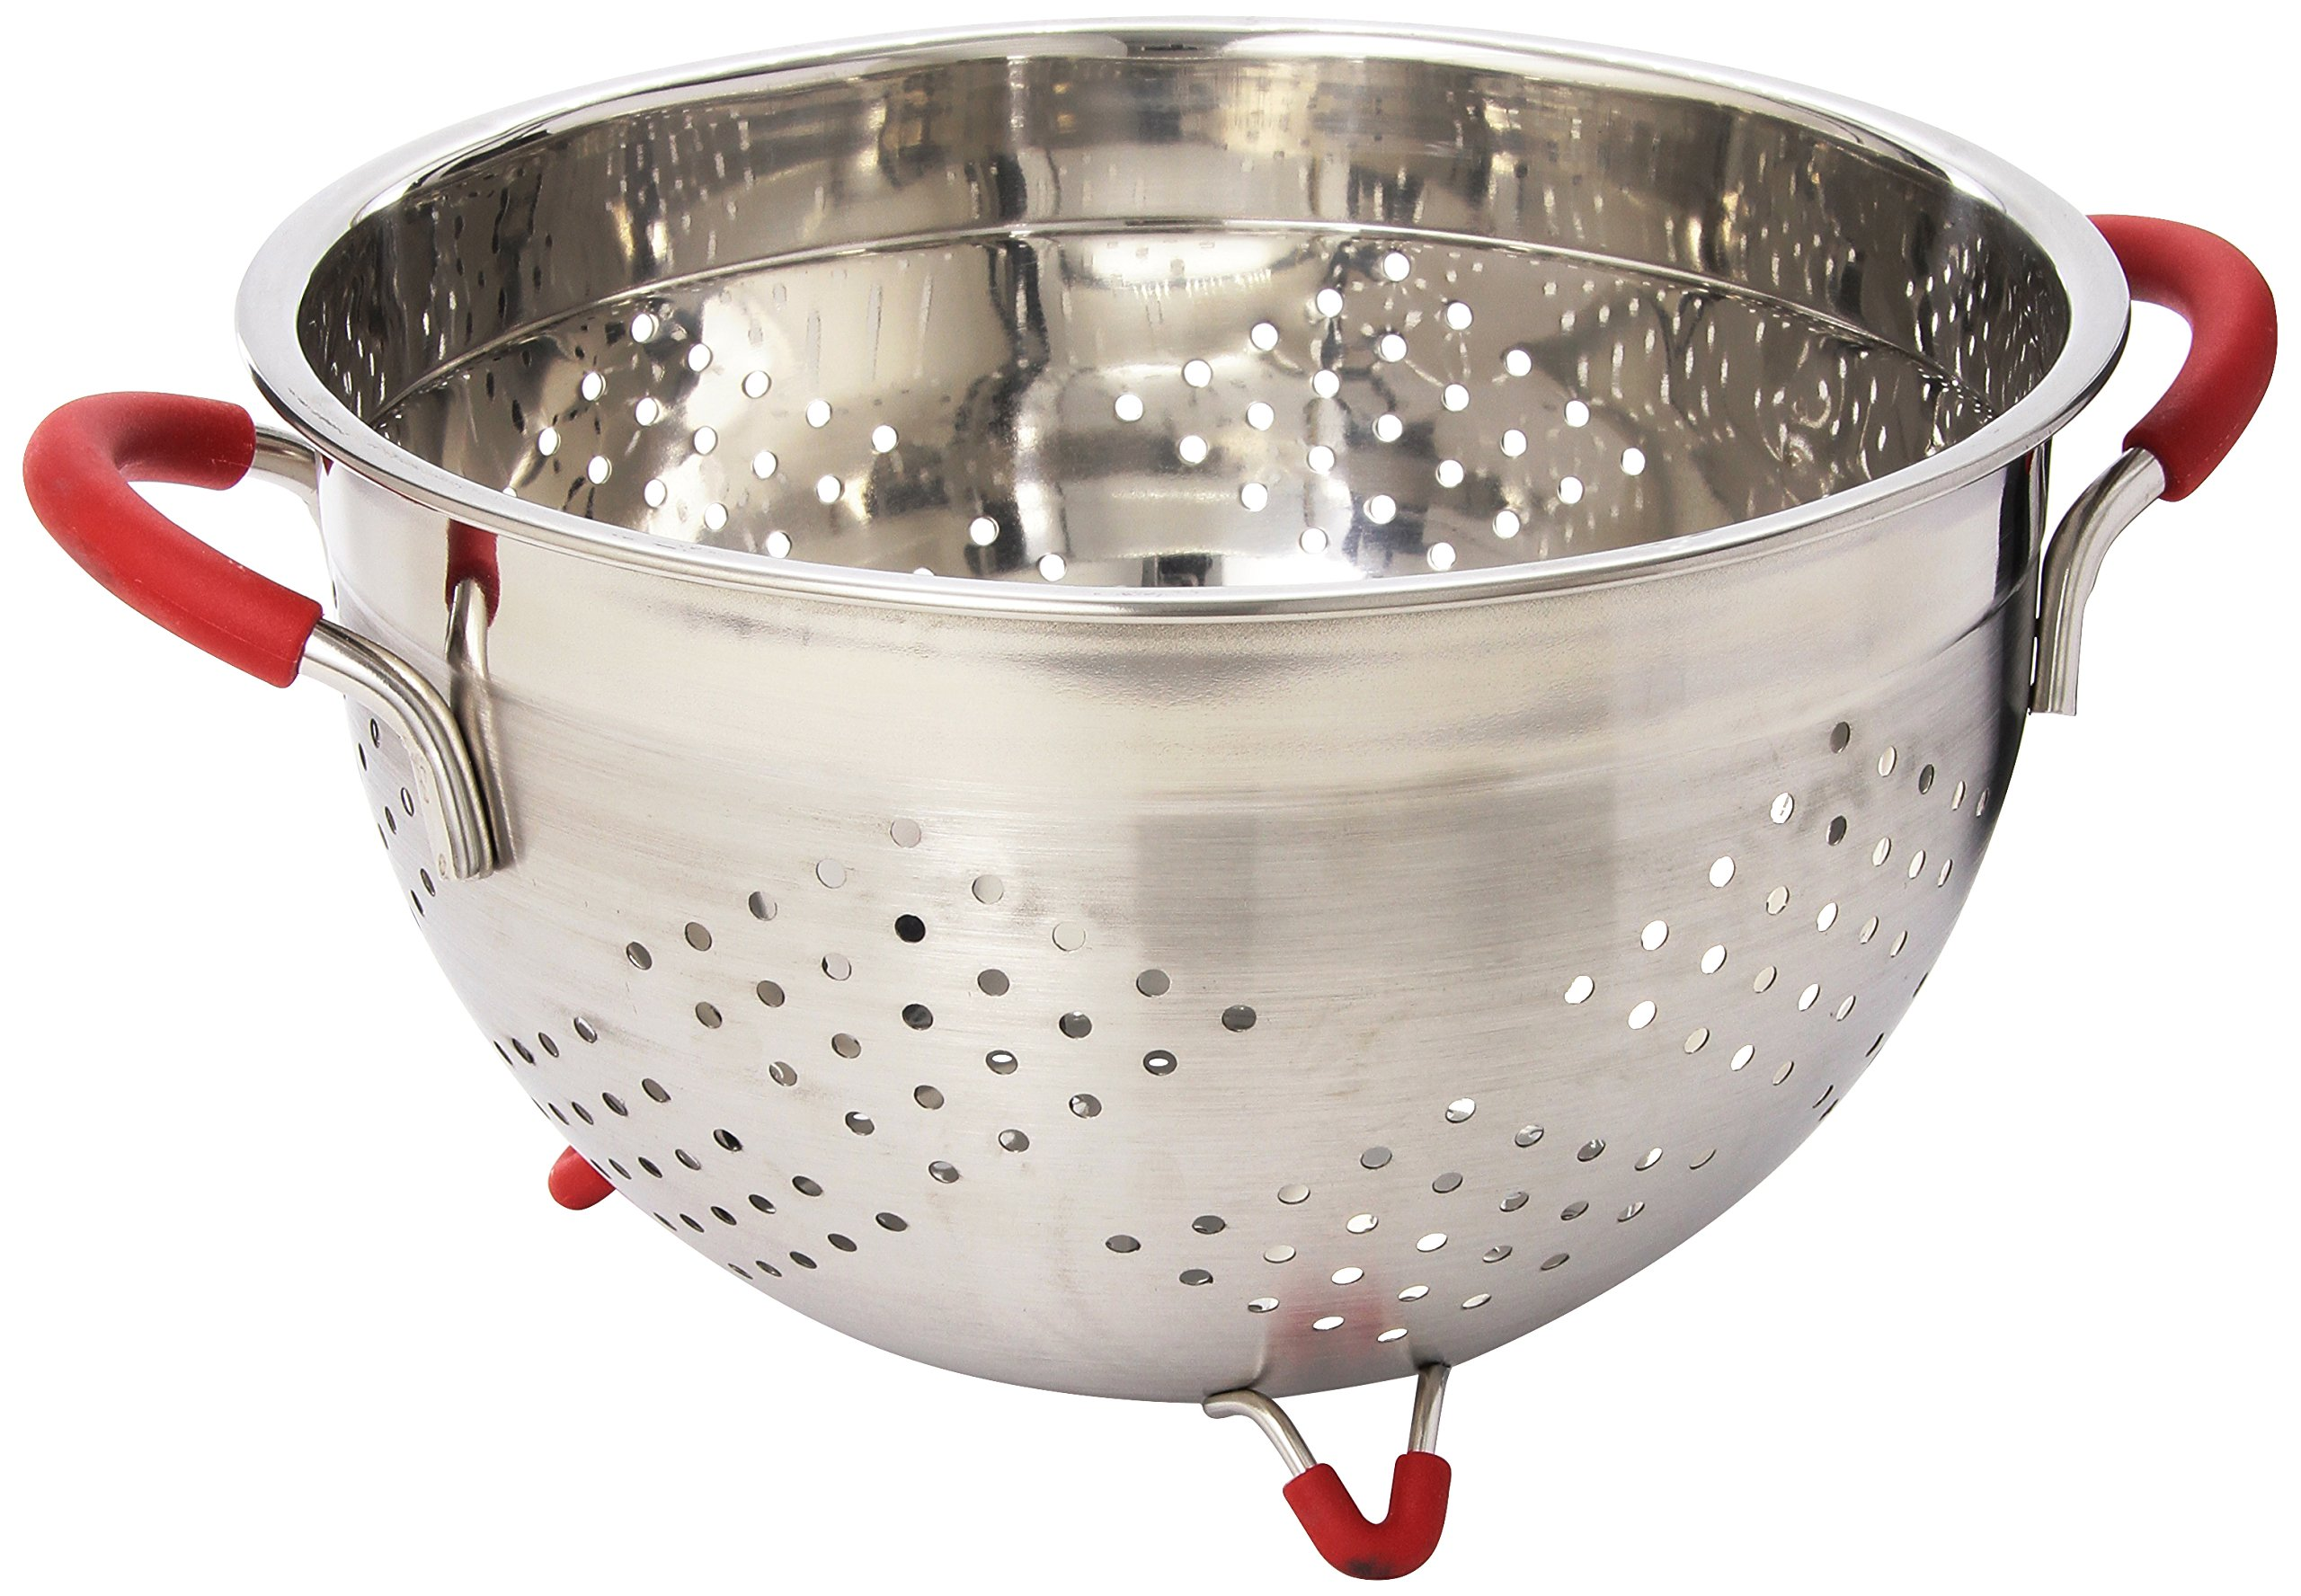 Weston Stainless Steel Colander, 5.5-Quart (66-0105-W), Silicone Handles and Feet, Dishwasher Safe